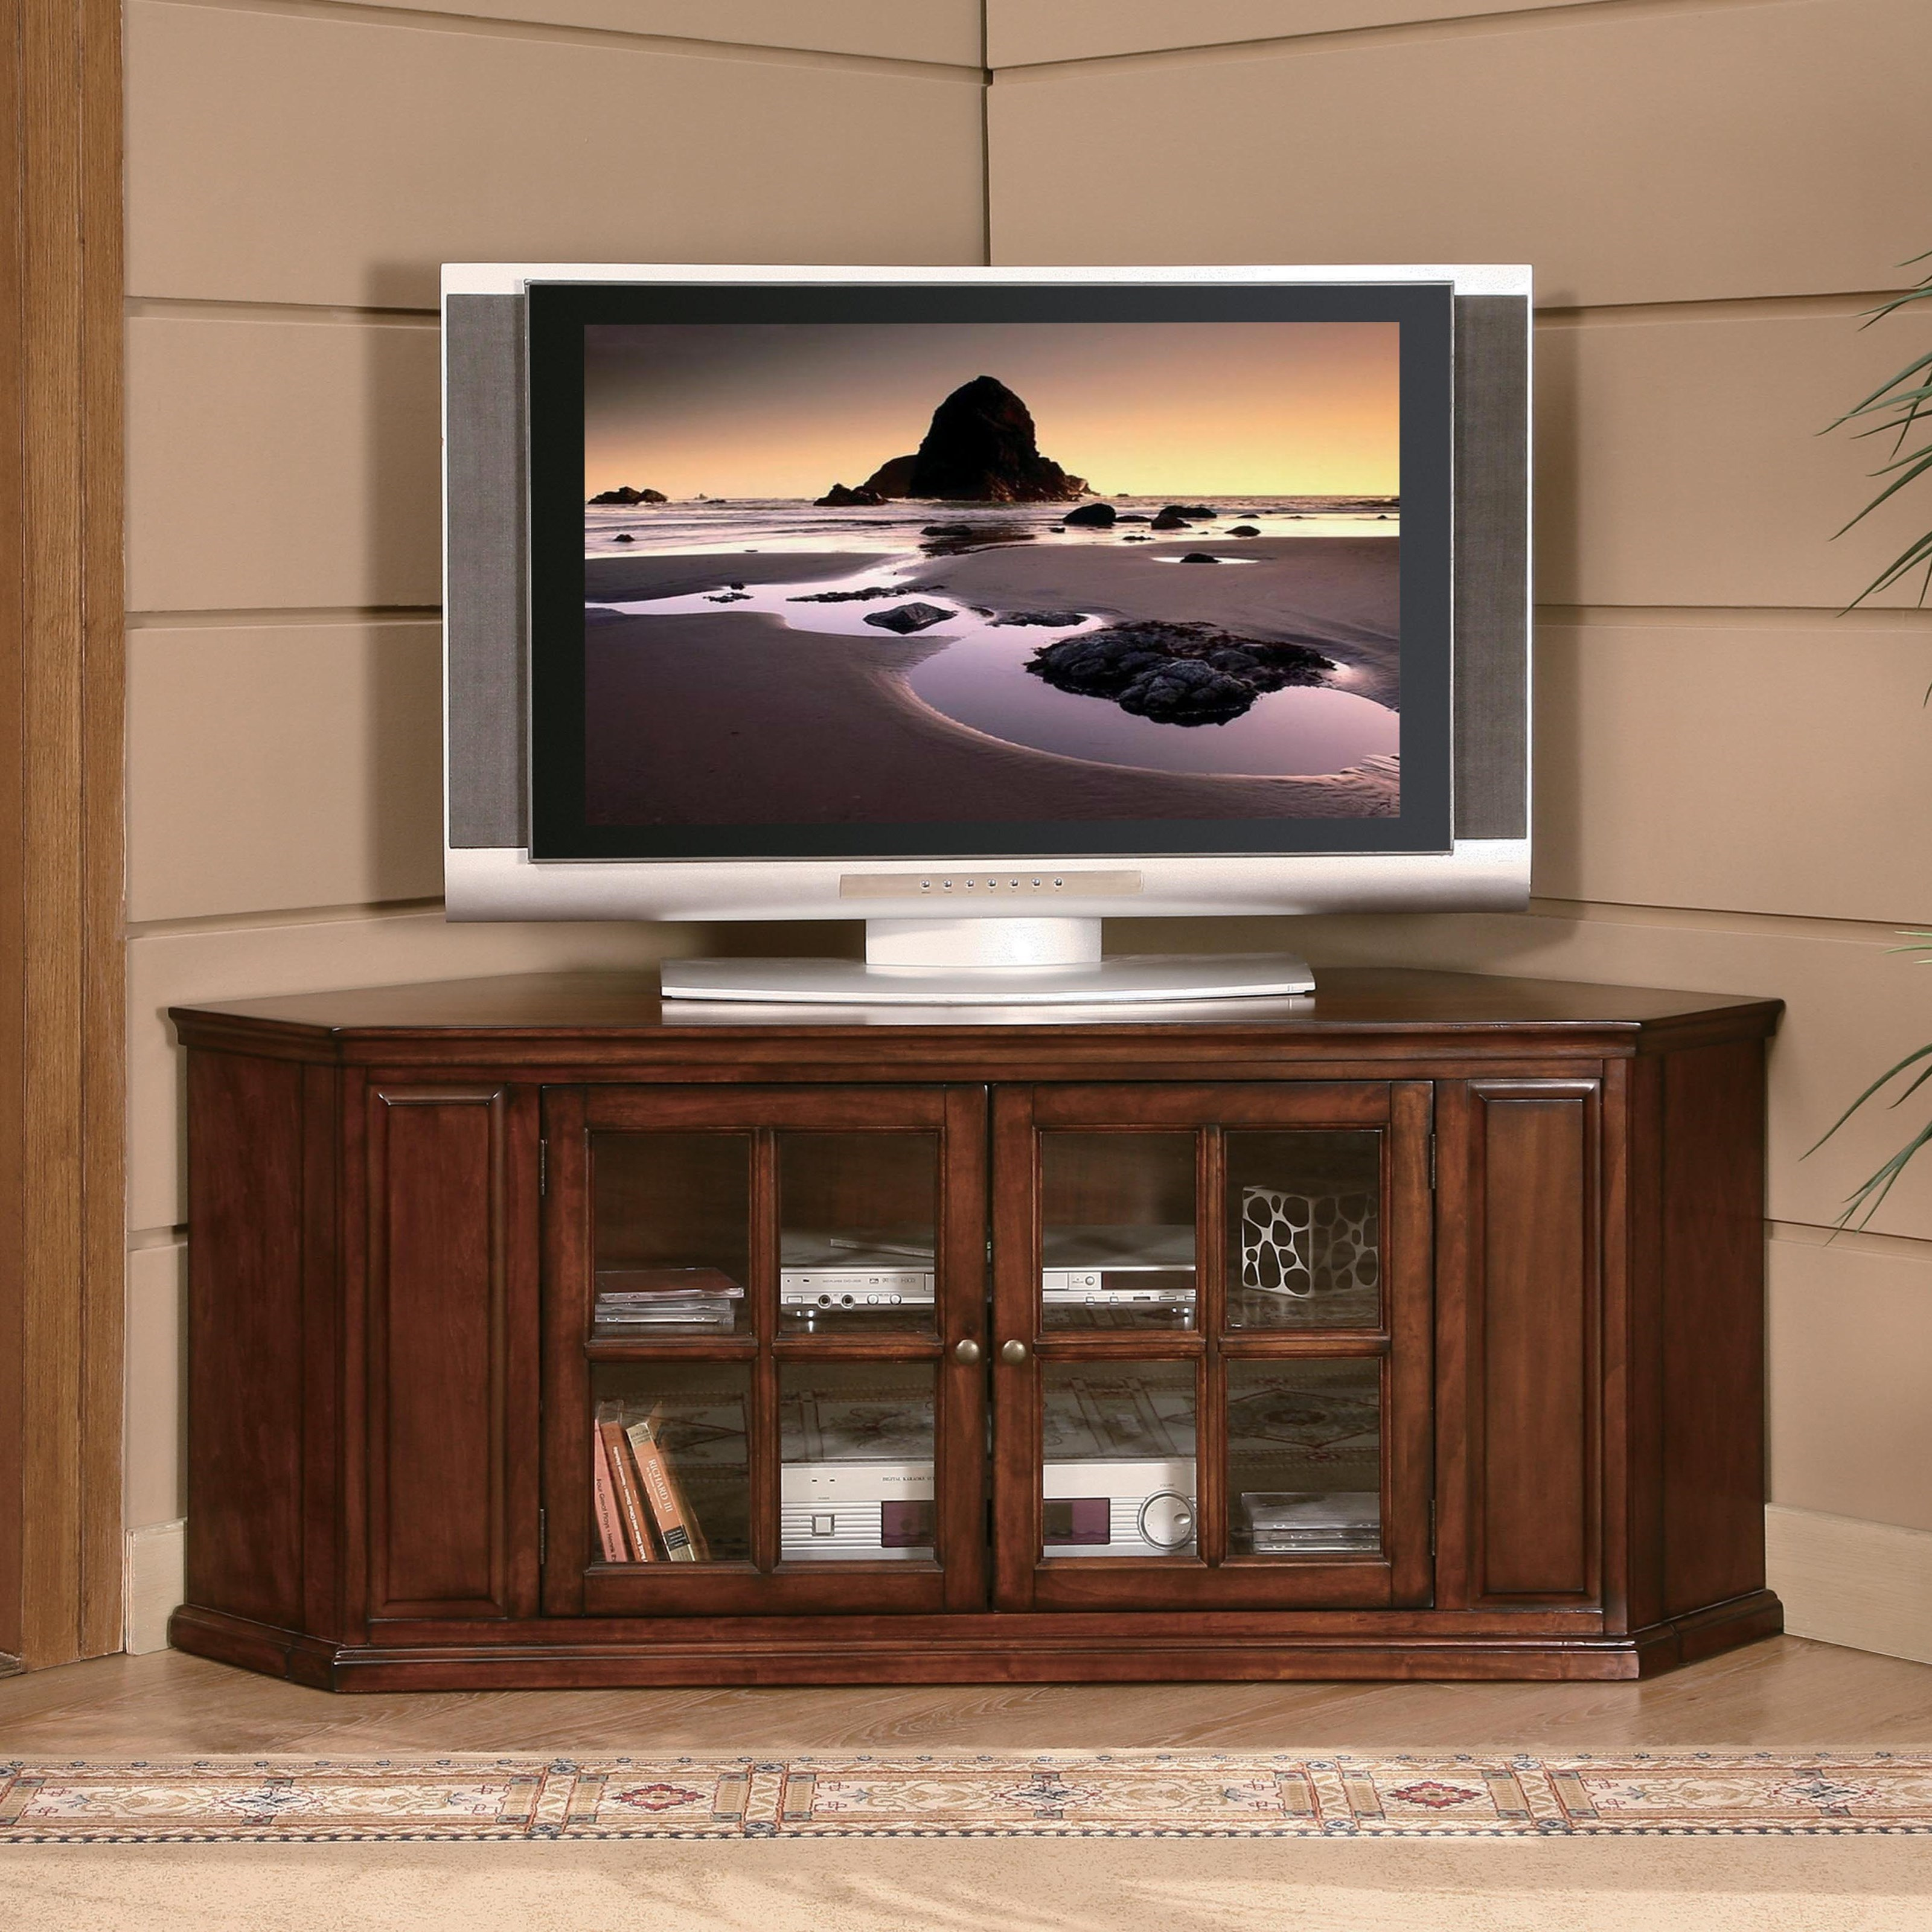 Homelegance Hayden Transitional TV Stand with Glass